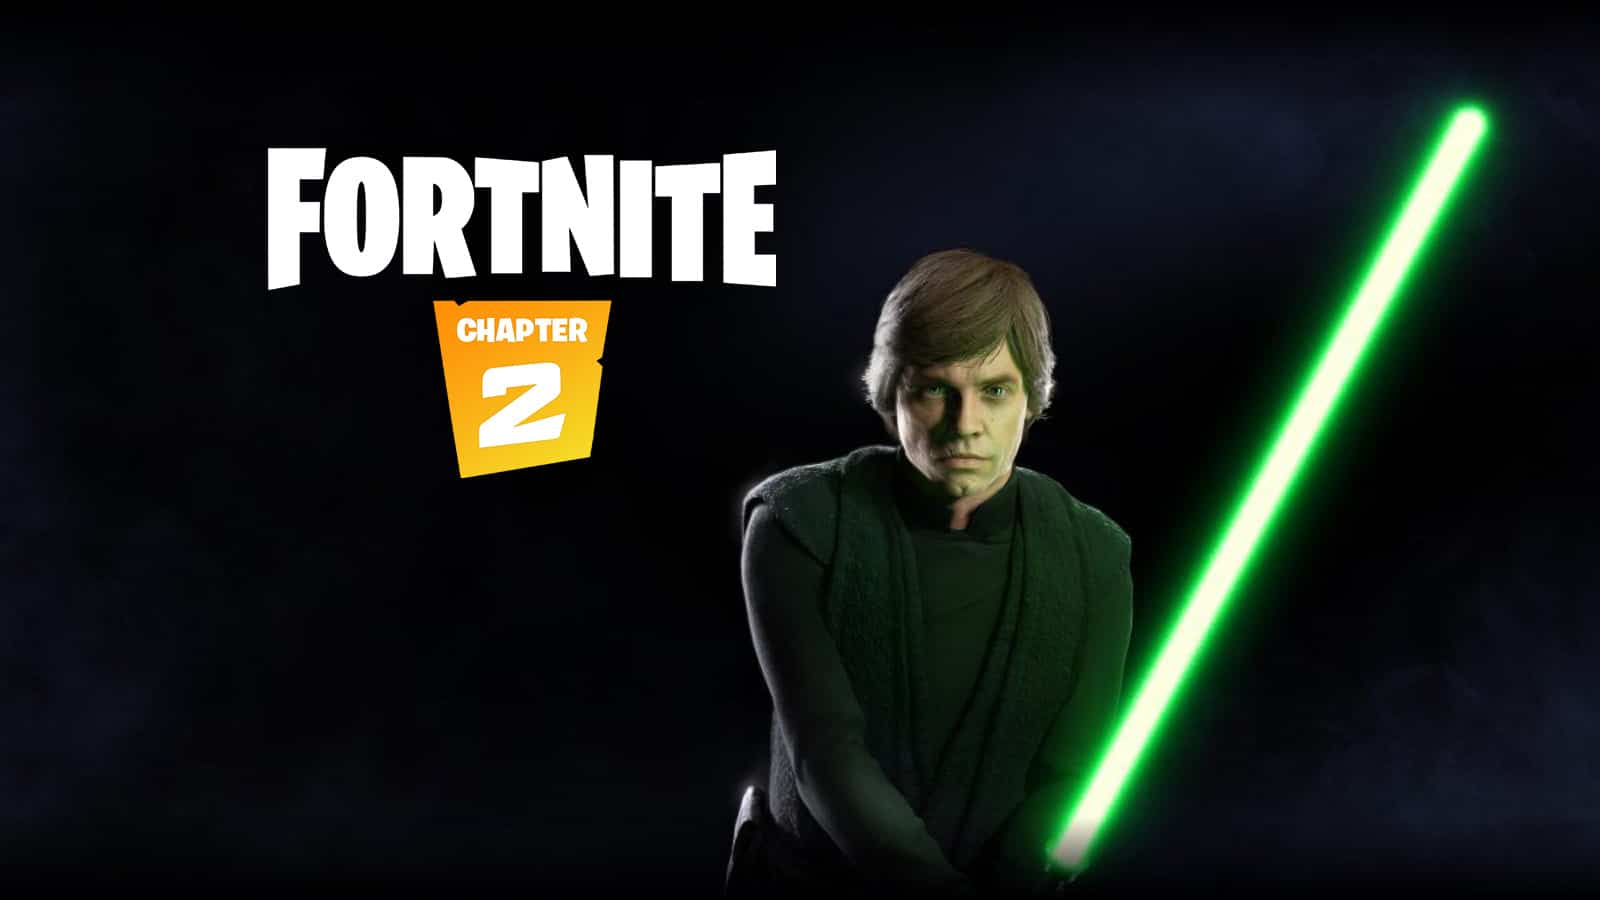 Fortnite Luke Skywalker Skin